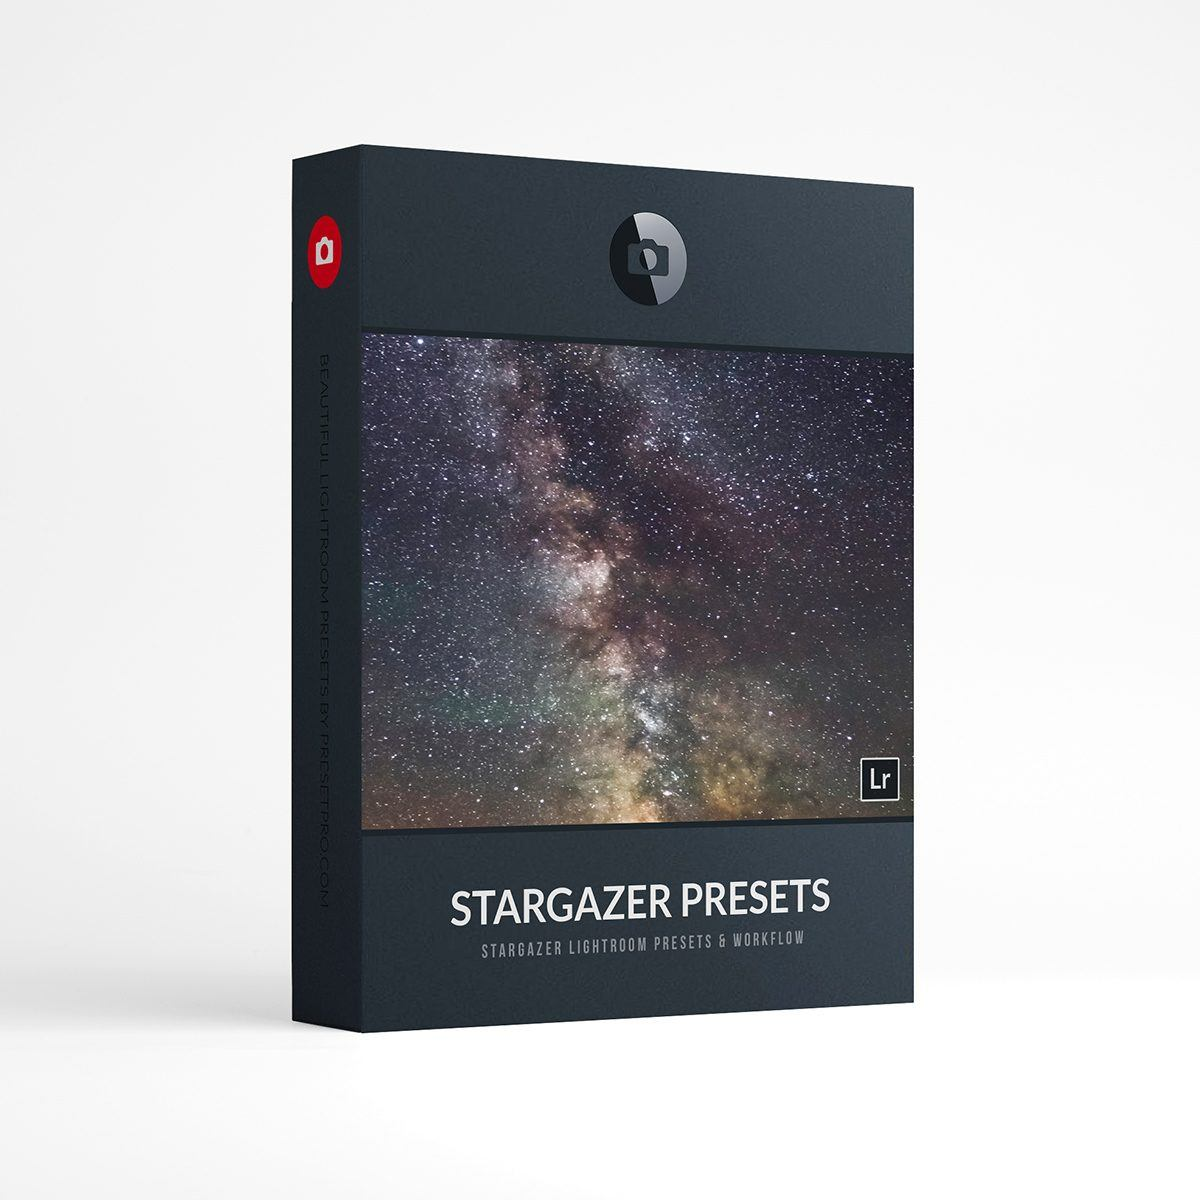 Beautiful Lightroom Presets Stargazer Collection Presetpro.com